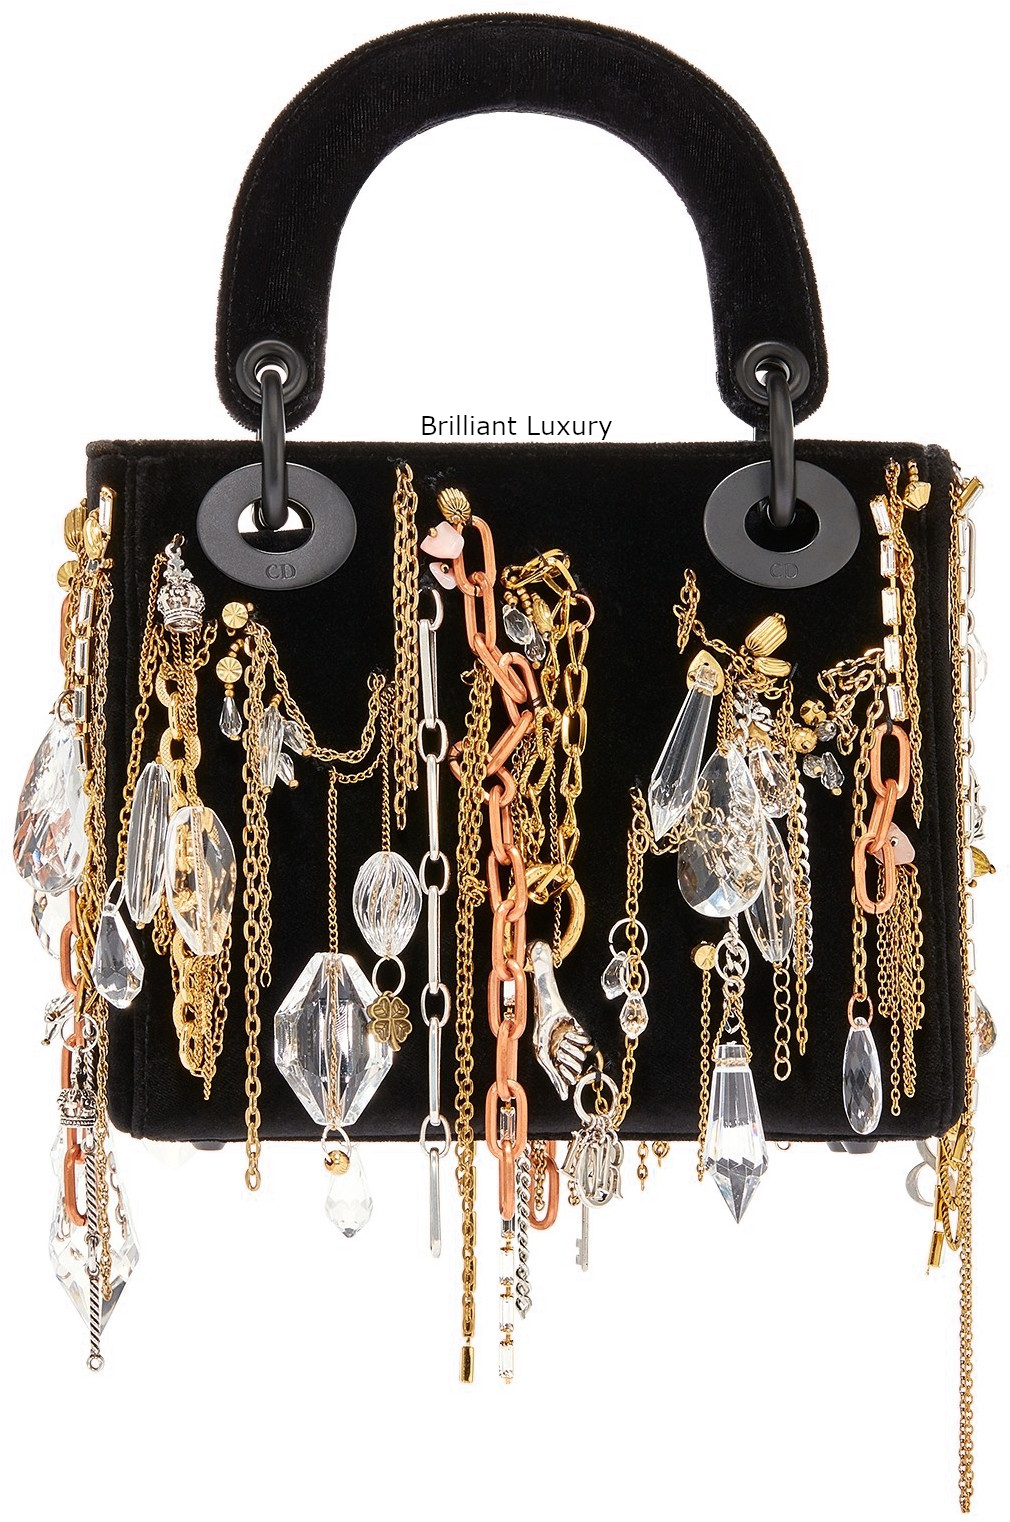 Lady Dior Art Bag in black velvet embroidered with chains-jewellery in ultra black finish metal Designer Isabelle Cornaro